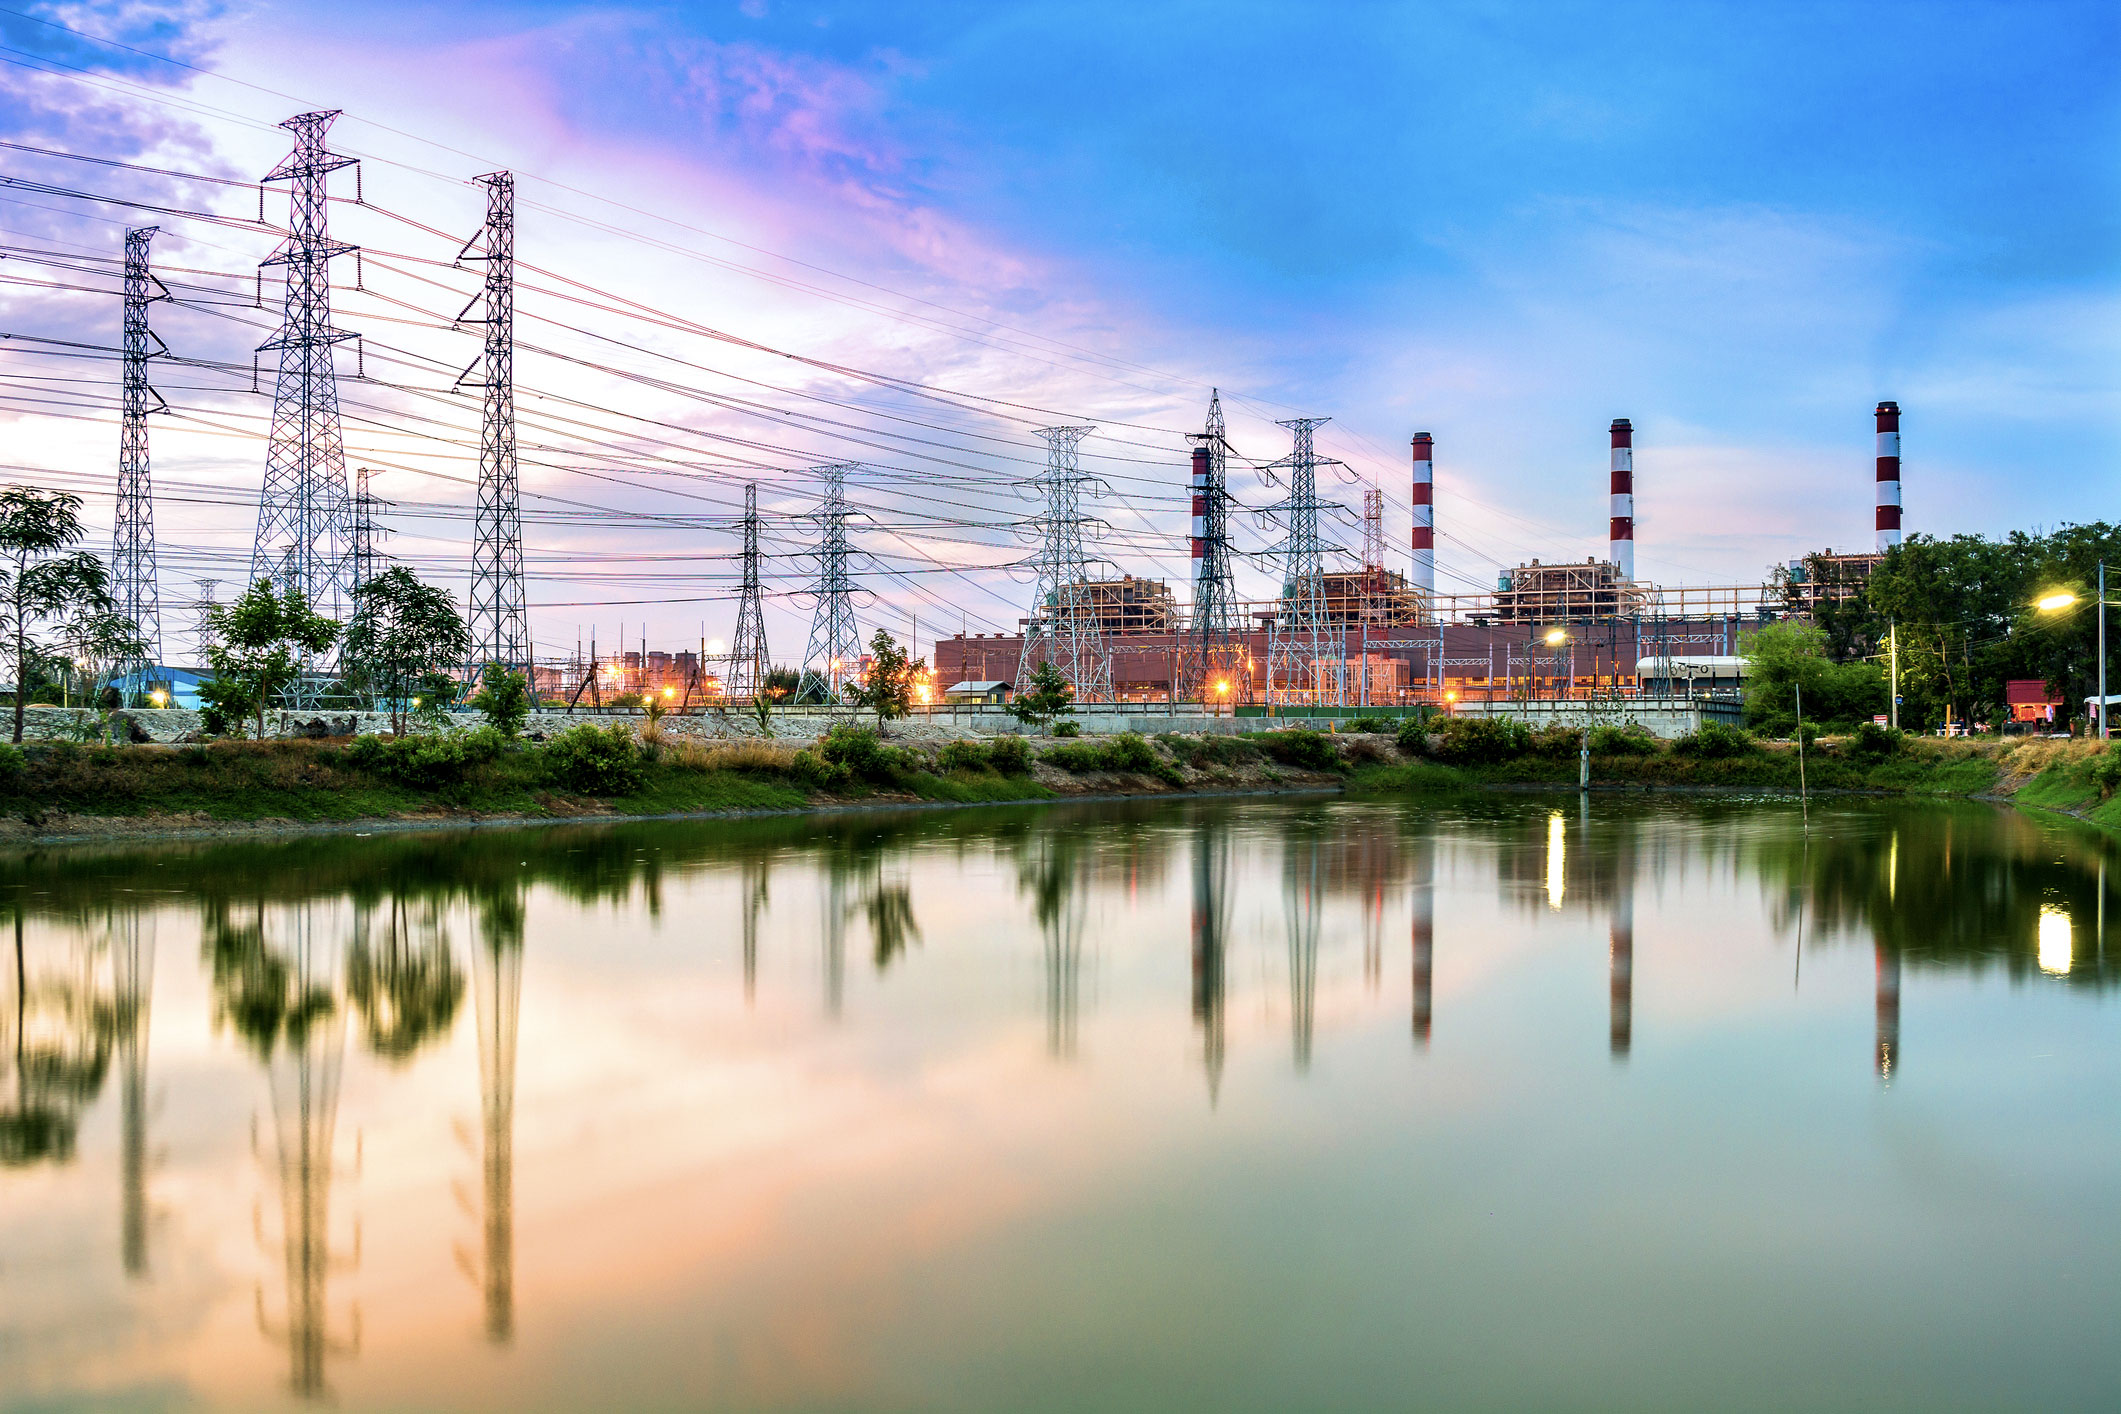 Twilight-photo-of-power-plant